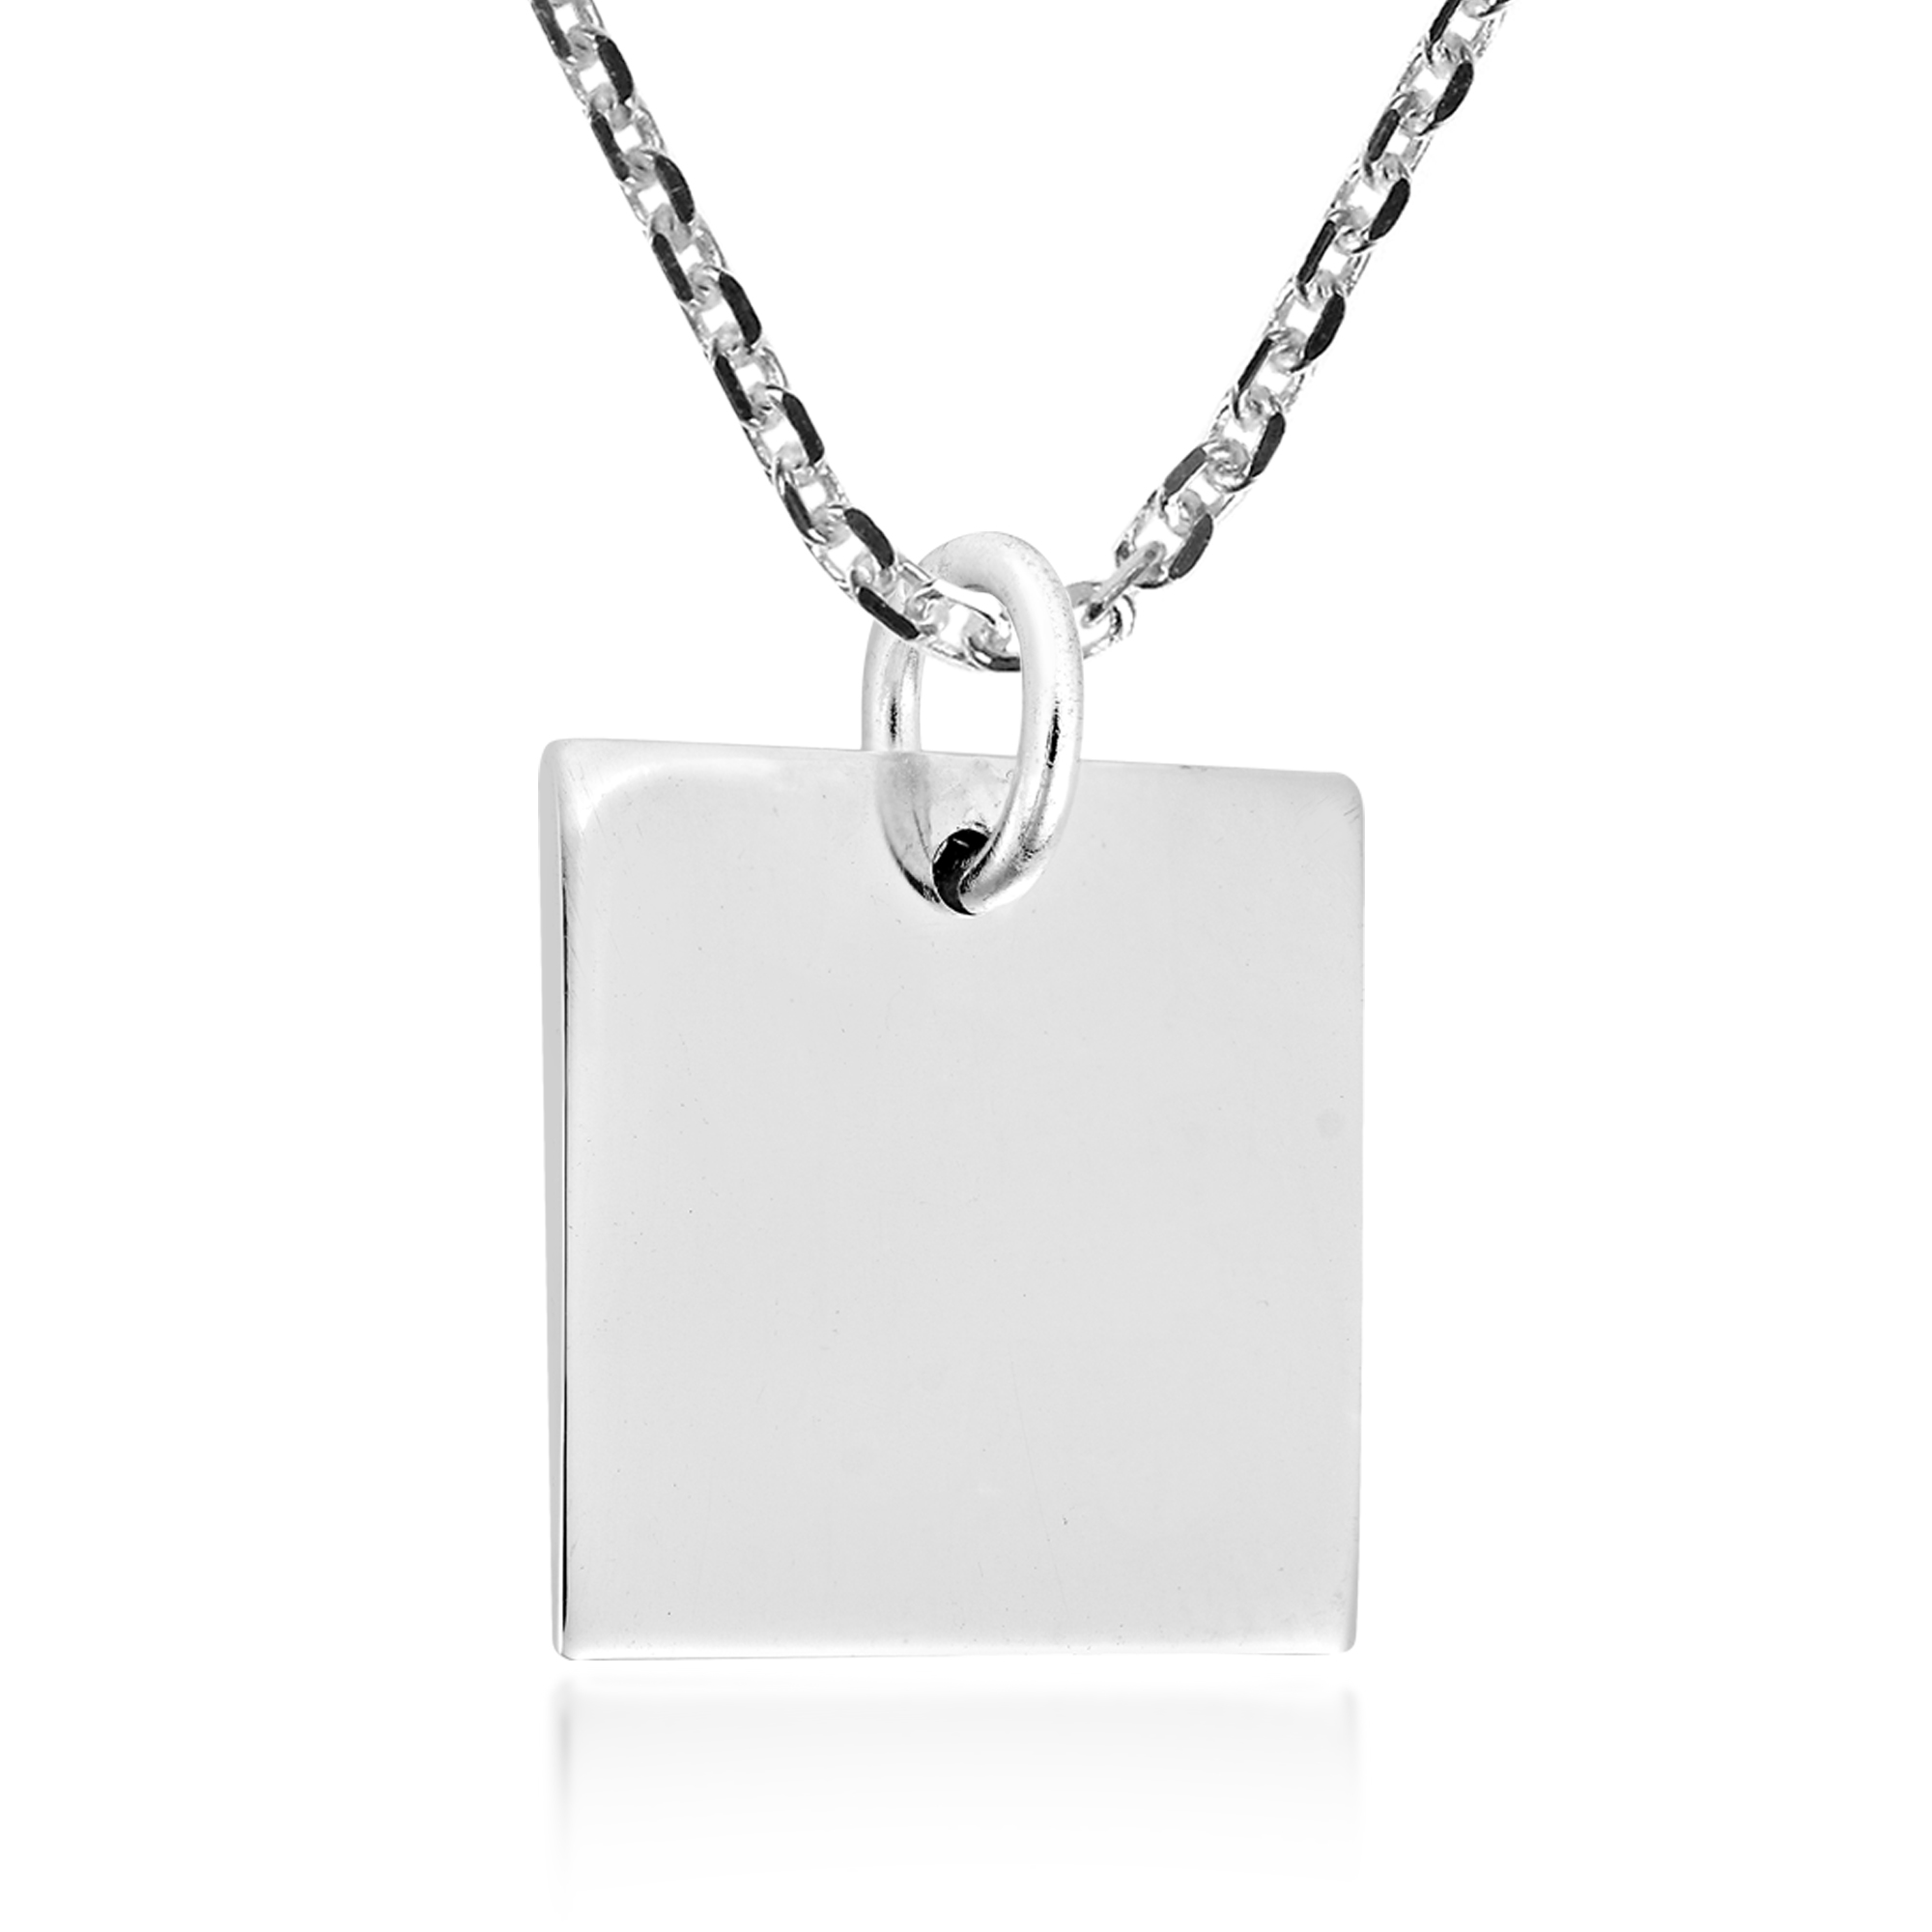 shop e jezebel london soho necklace jl plain jewellery